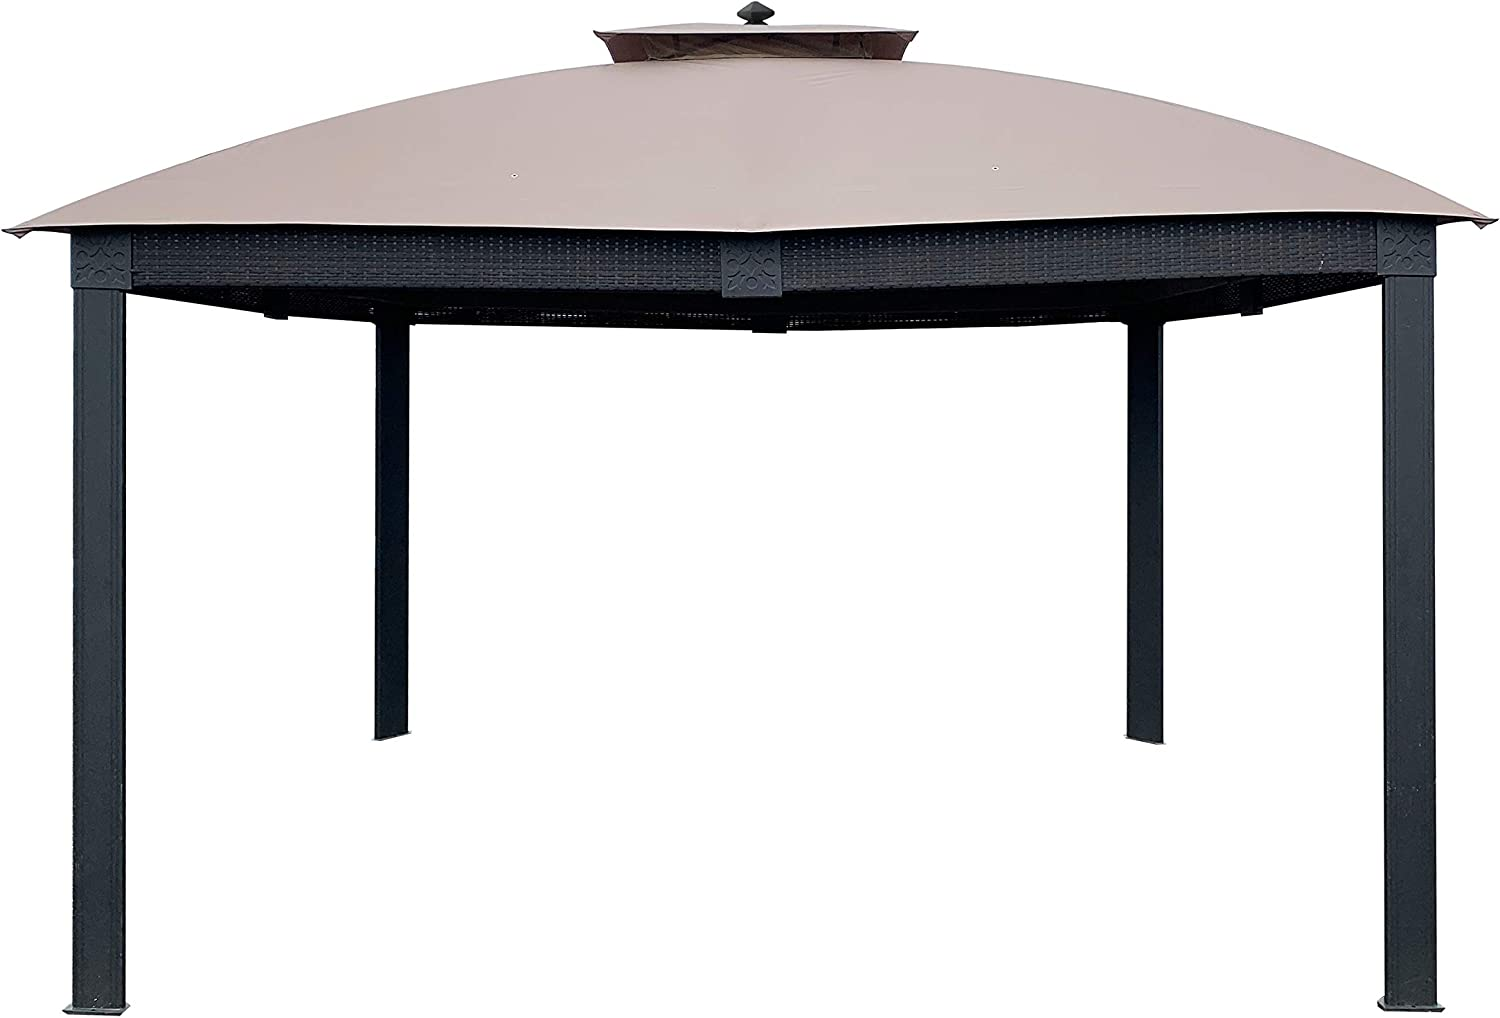 APEX GARDEN Replacement Canopy Top for Lowe's Allen roth Brown Metal Rectangle Semi- Gazebo Model #L-GZ815PCO-T